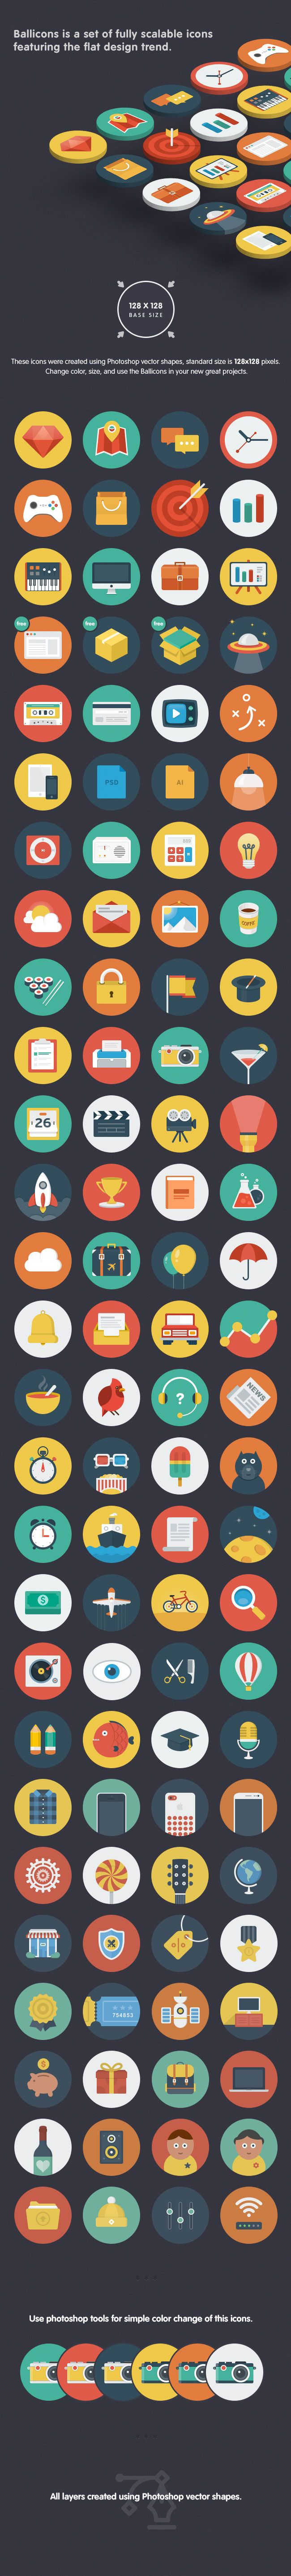 Ballicons: 110 Unique Flat Vector Icons - only $11! - MightyDeals